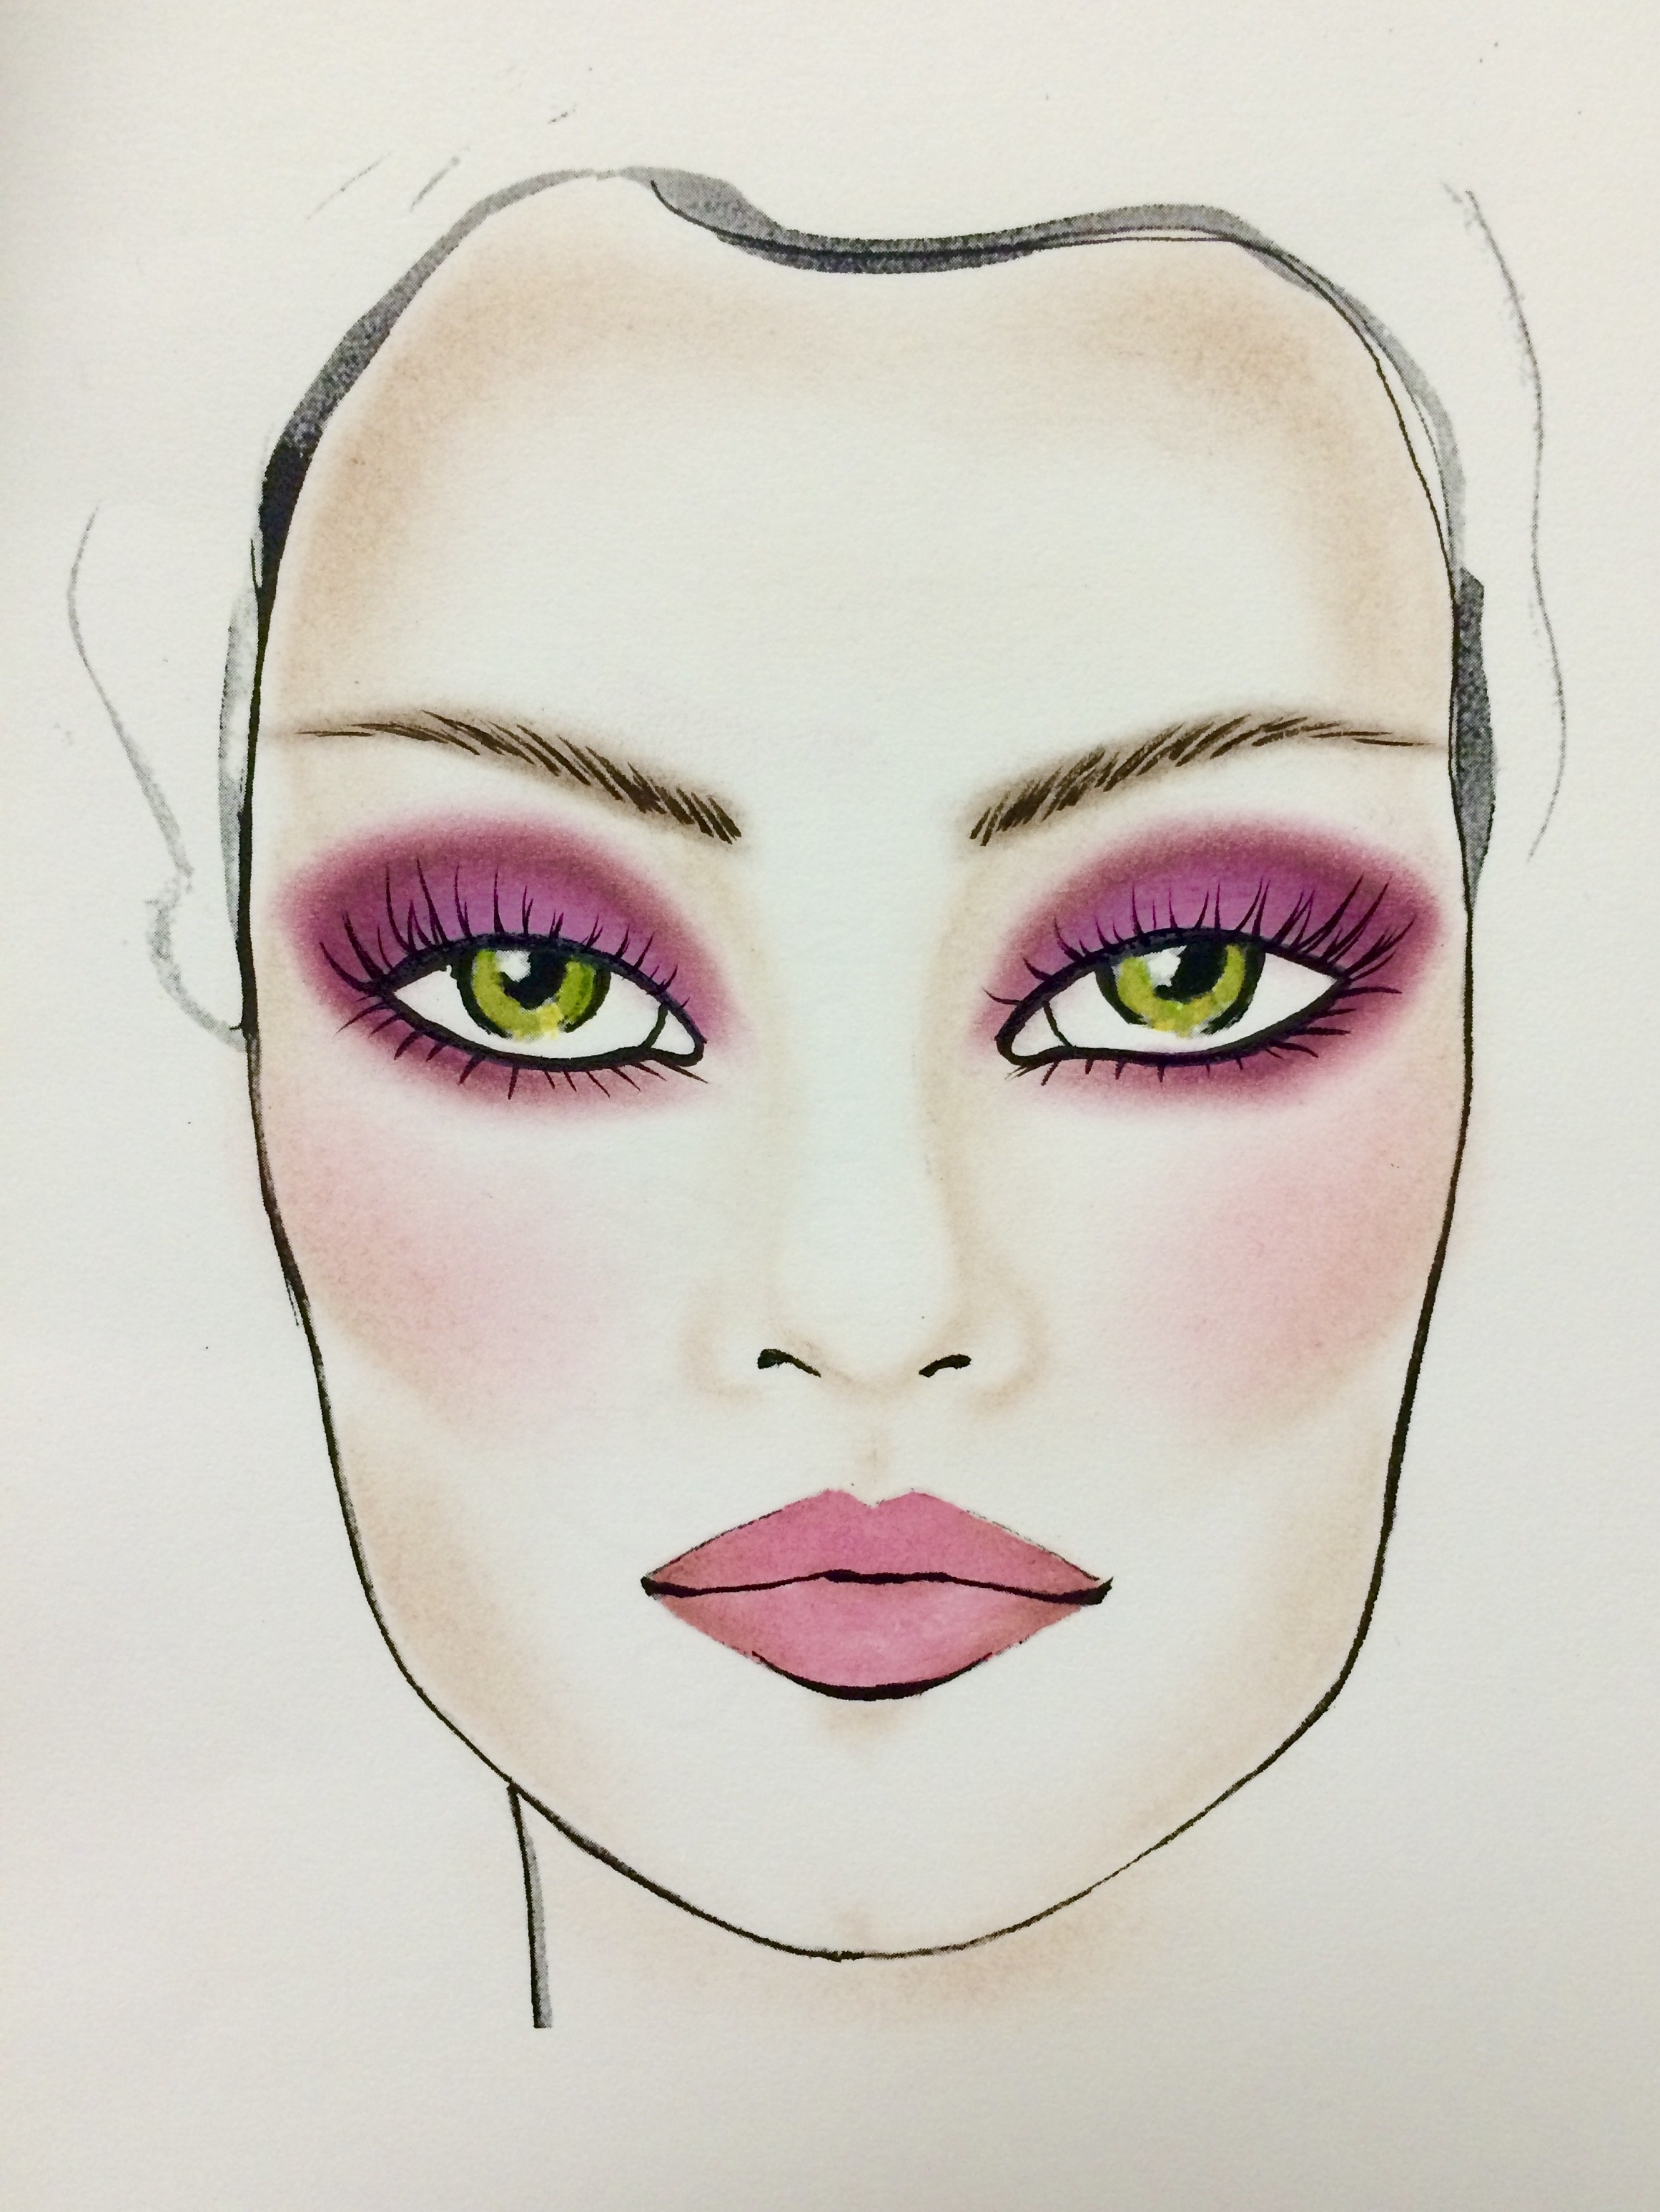 The Most Gorgeous Makeup For Green Eyes | Huffpost Life regarding What Color Eyeshadow For Green Eyes And Brown Hair